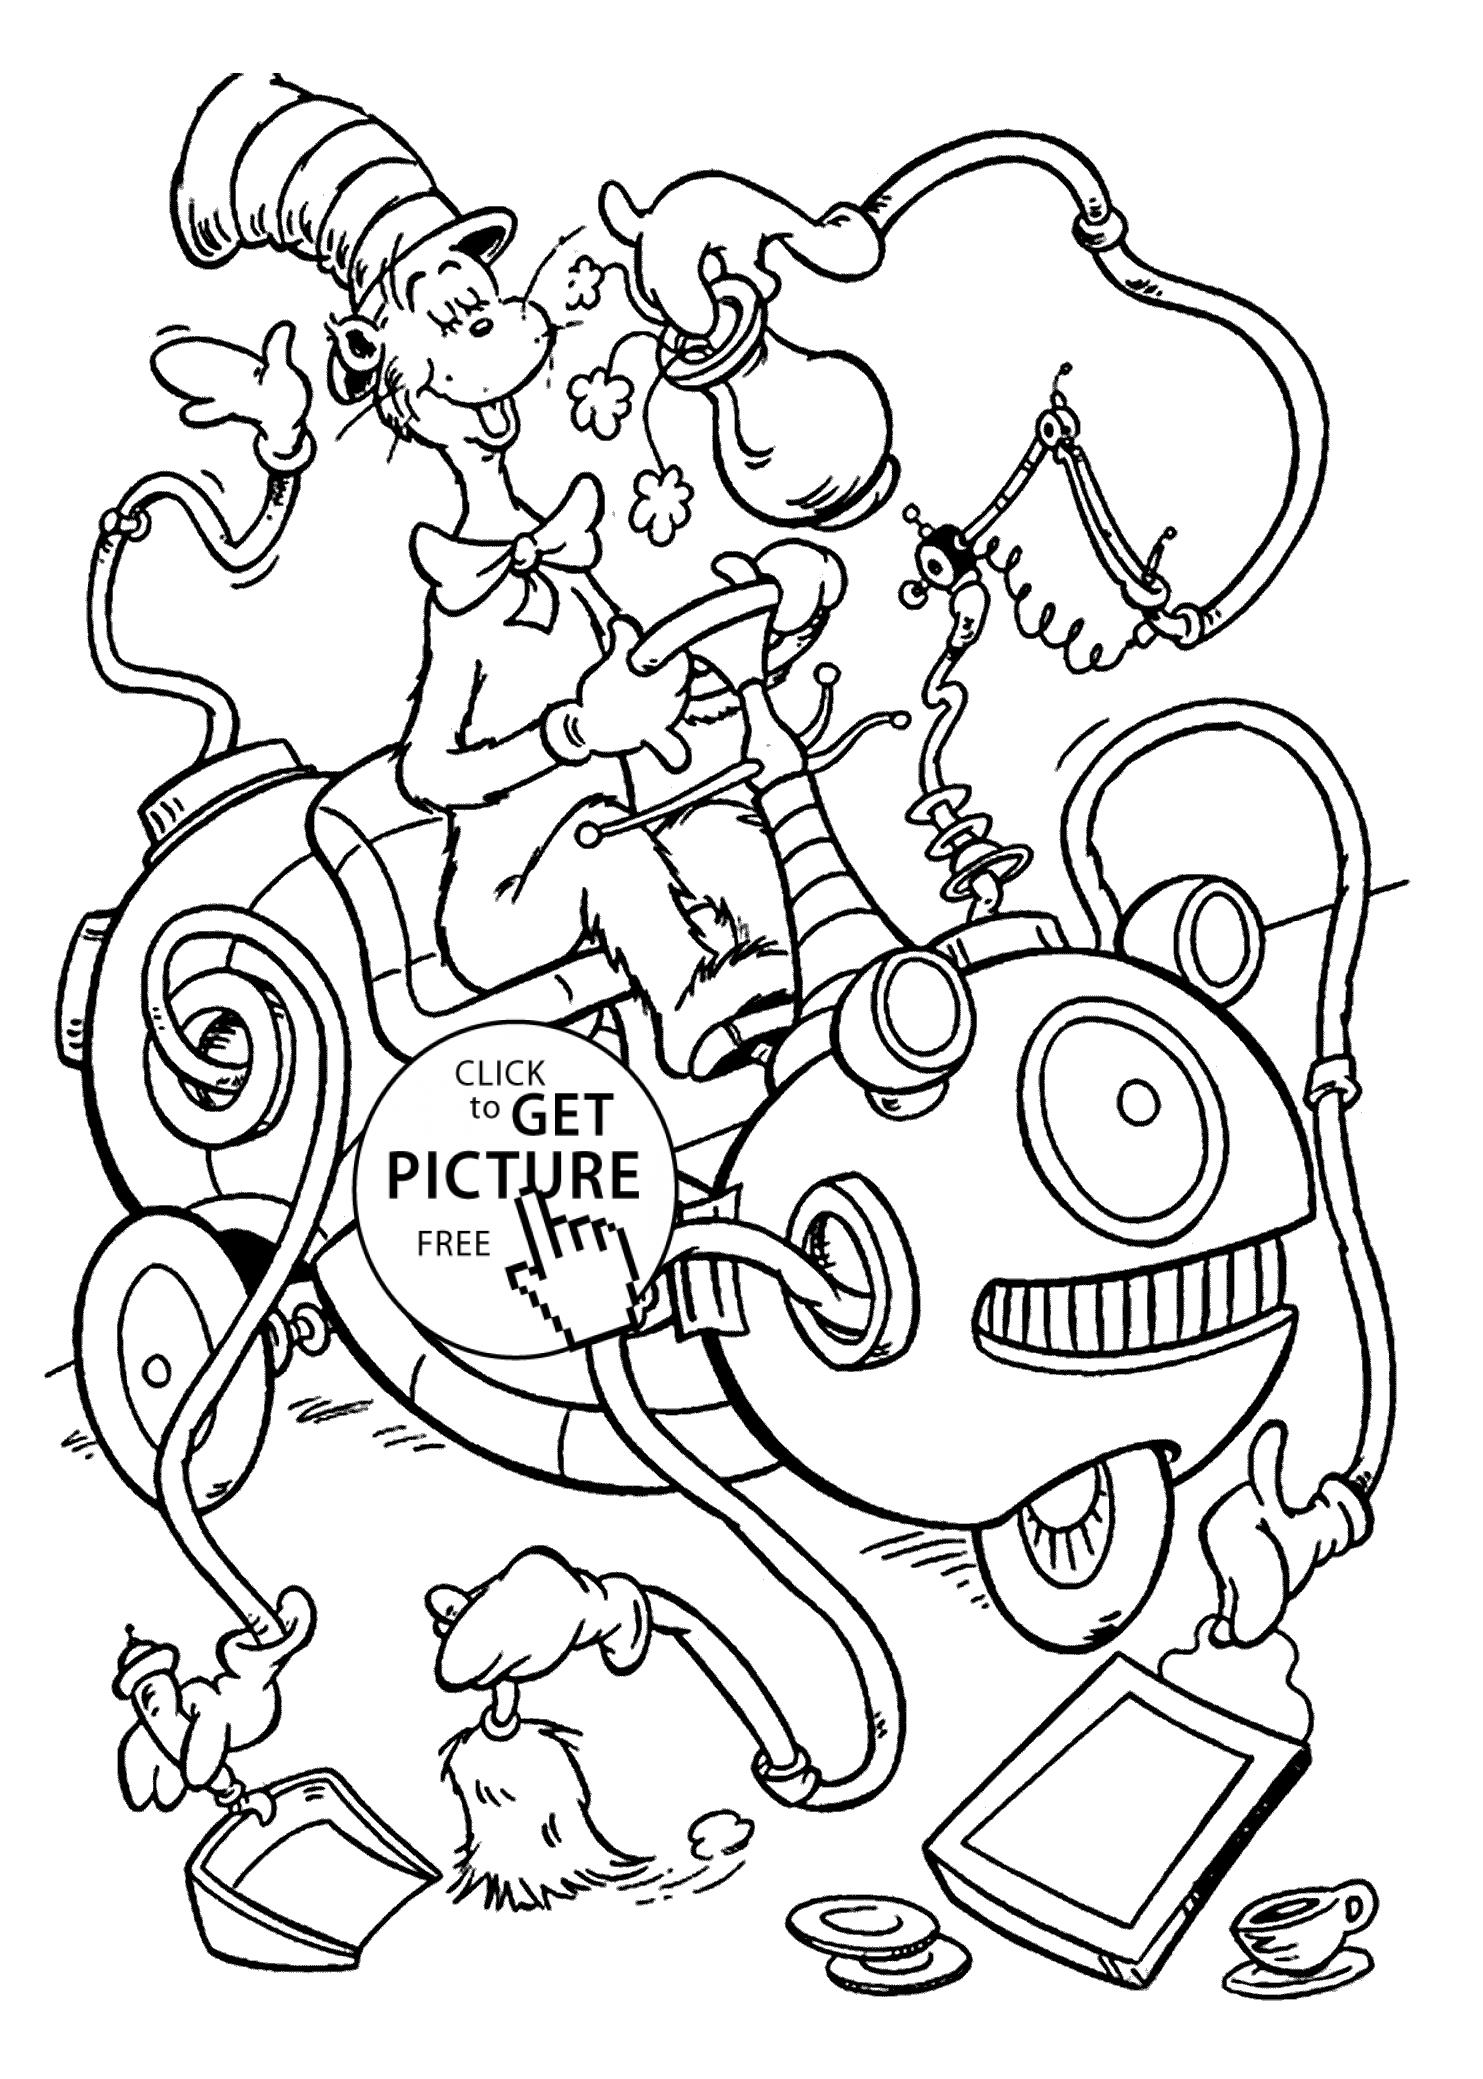 Industrial Revolution Coloring Pages At Getdrawings